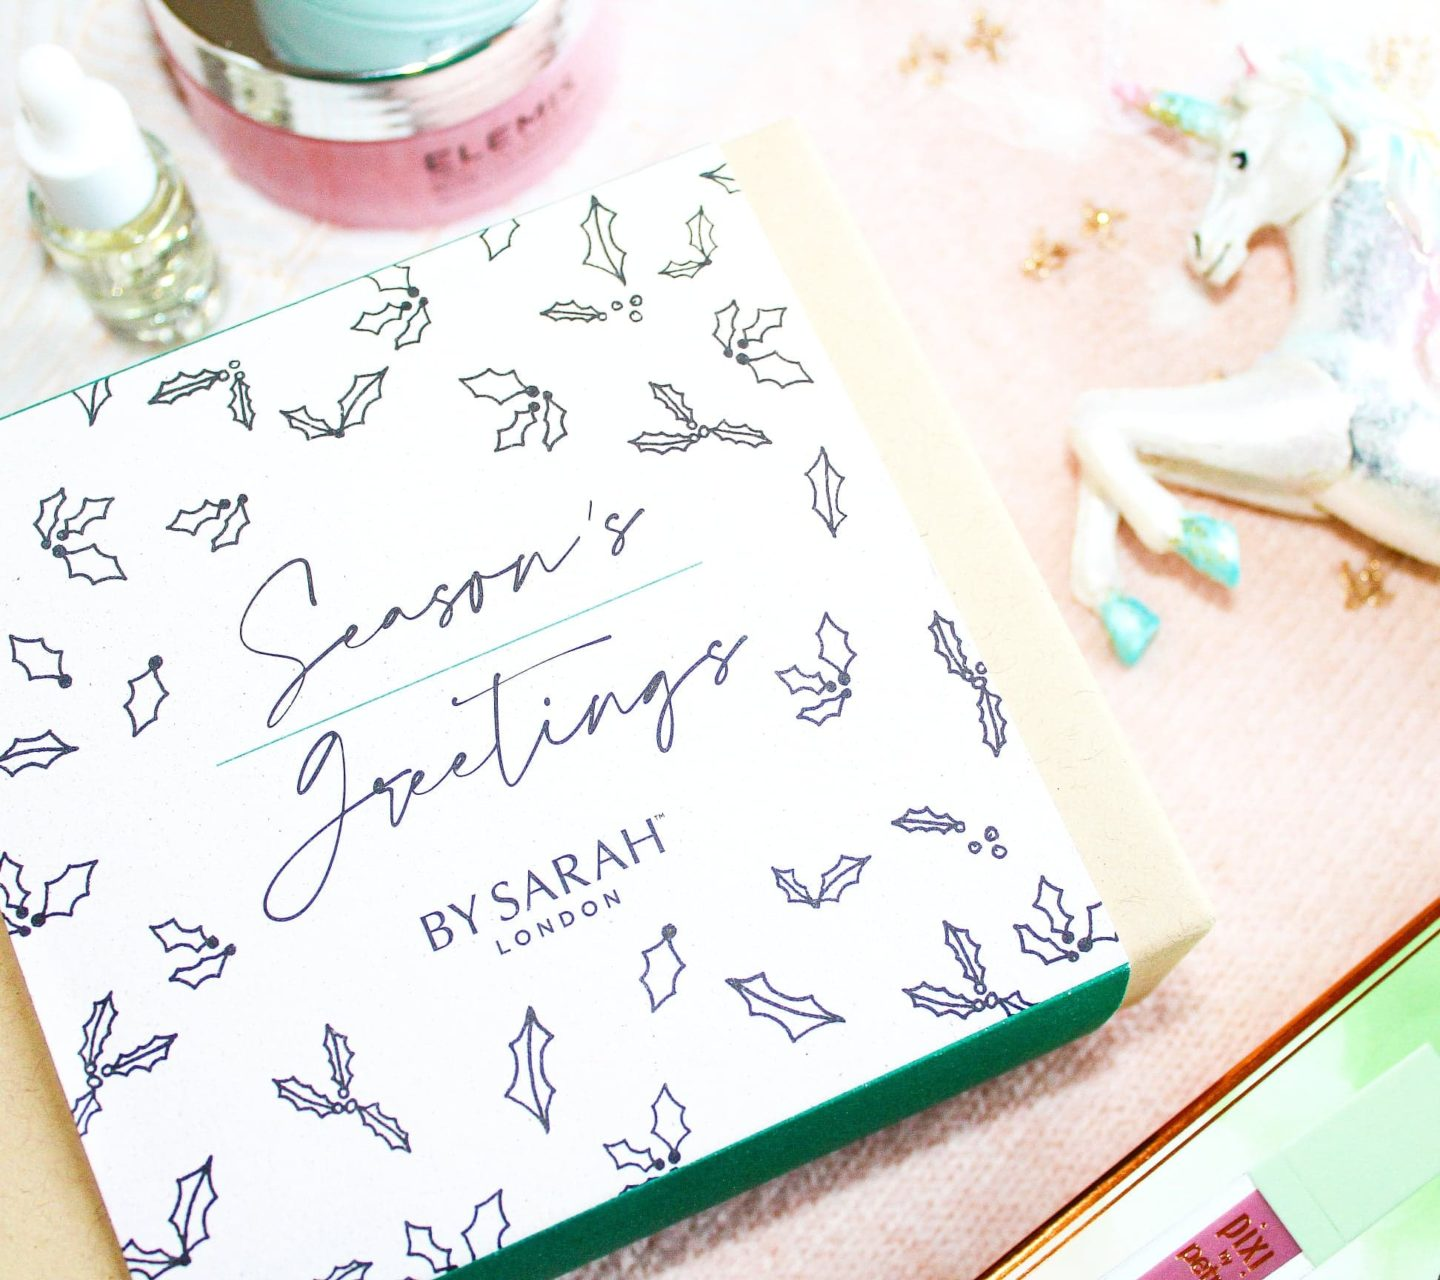 Christmas Gift Ideas for Her 2019 | BY SARAH LONDON